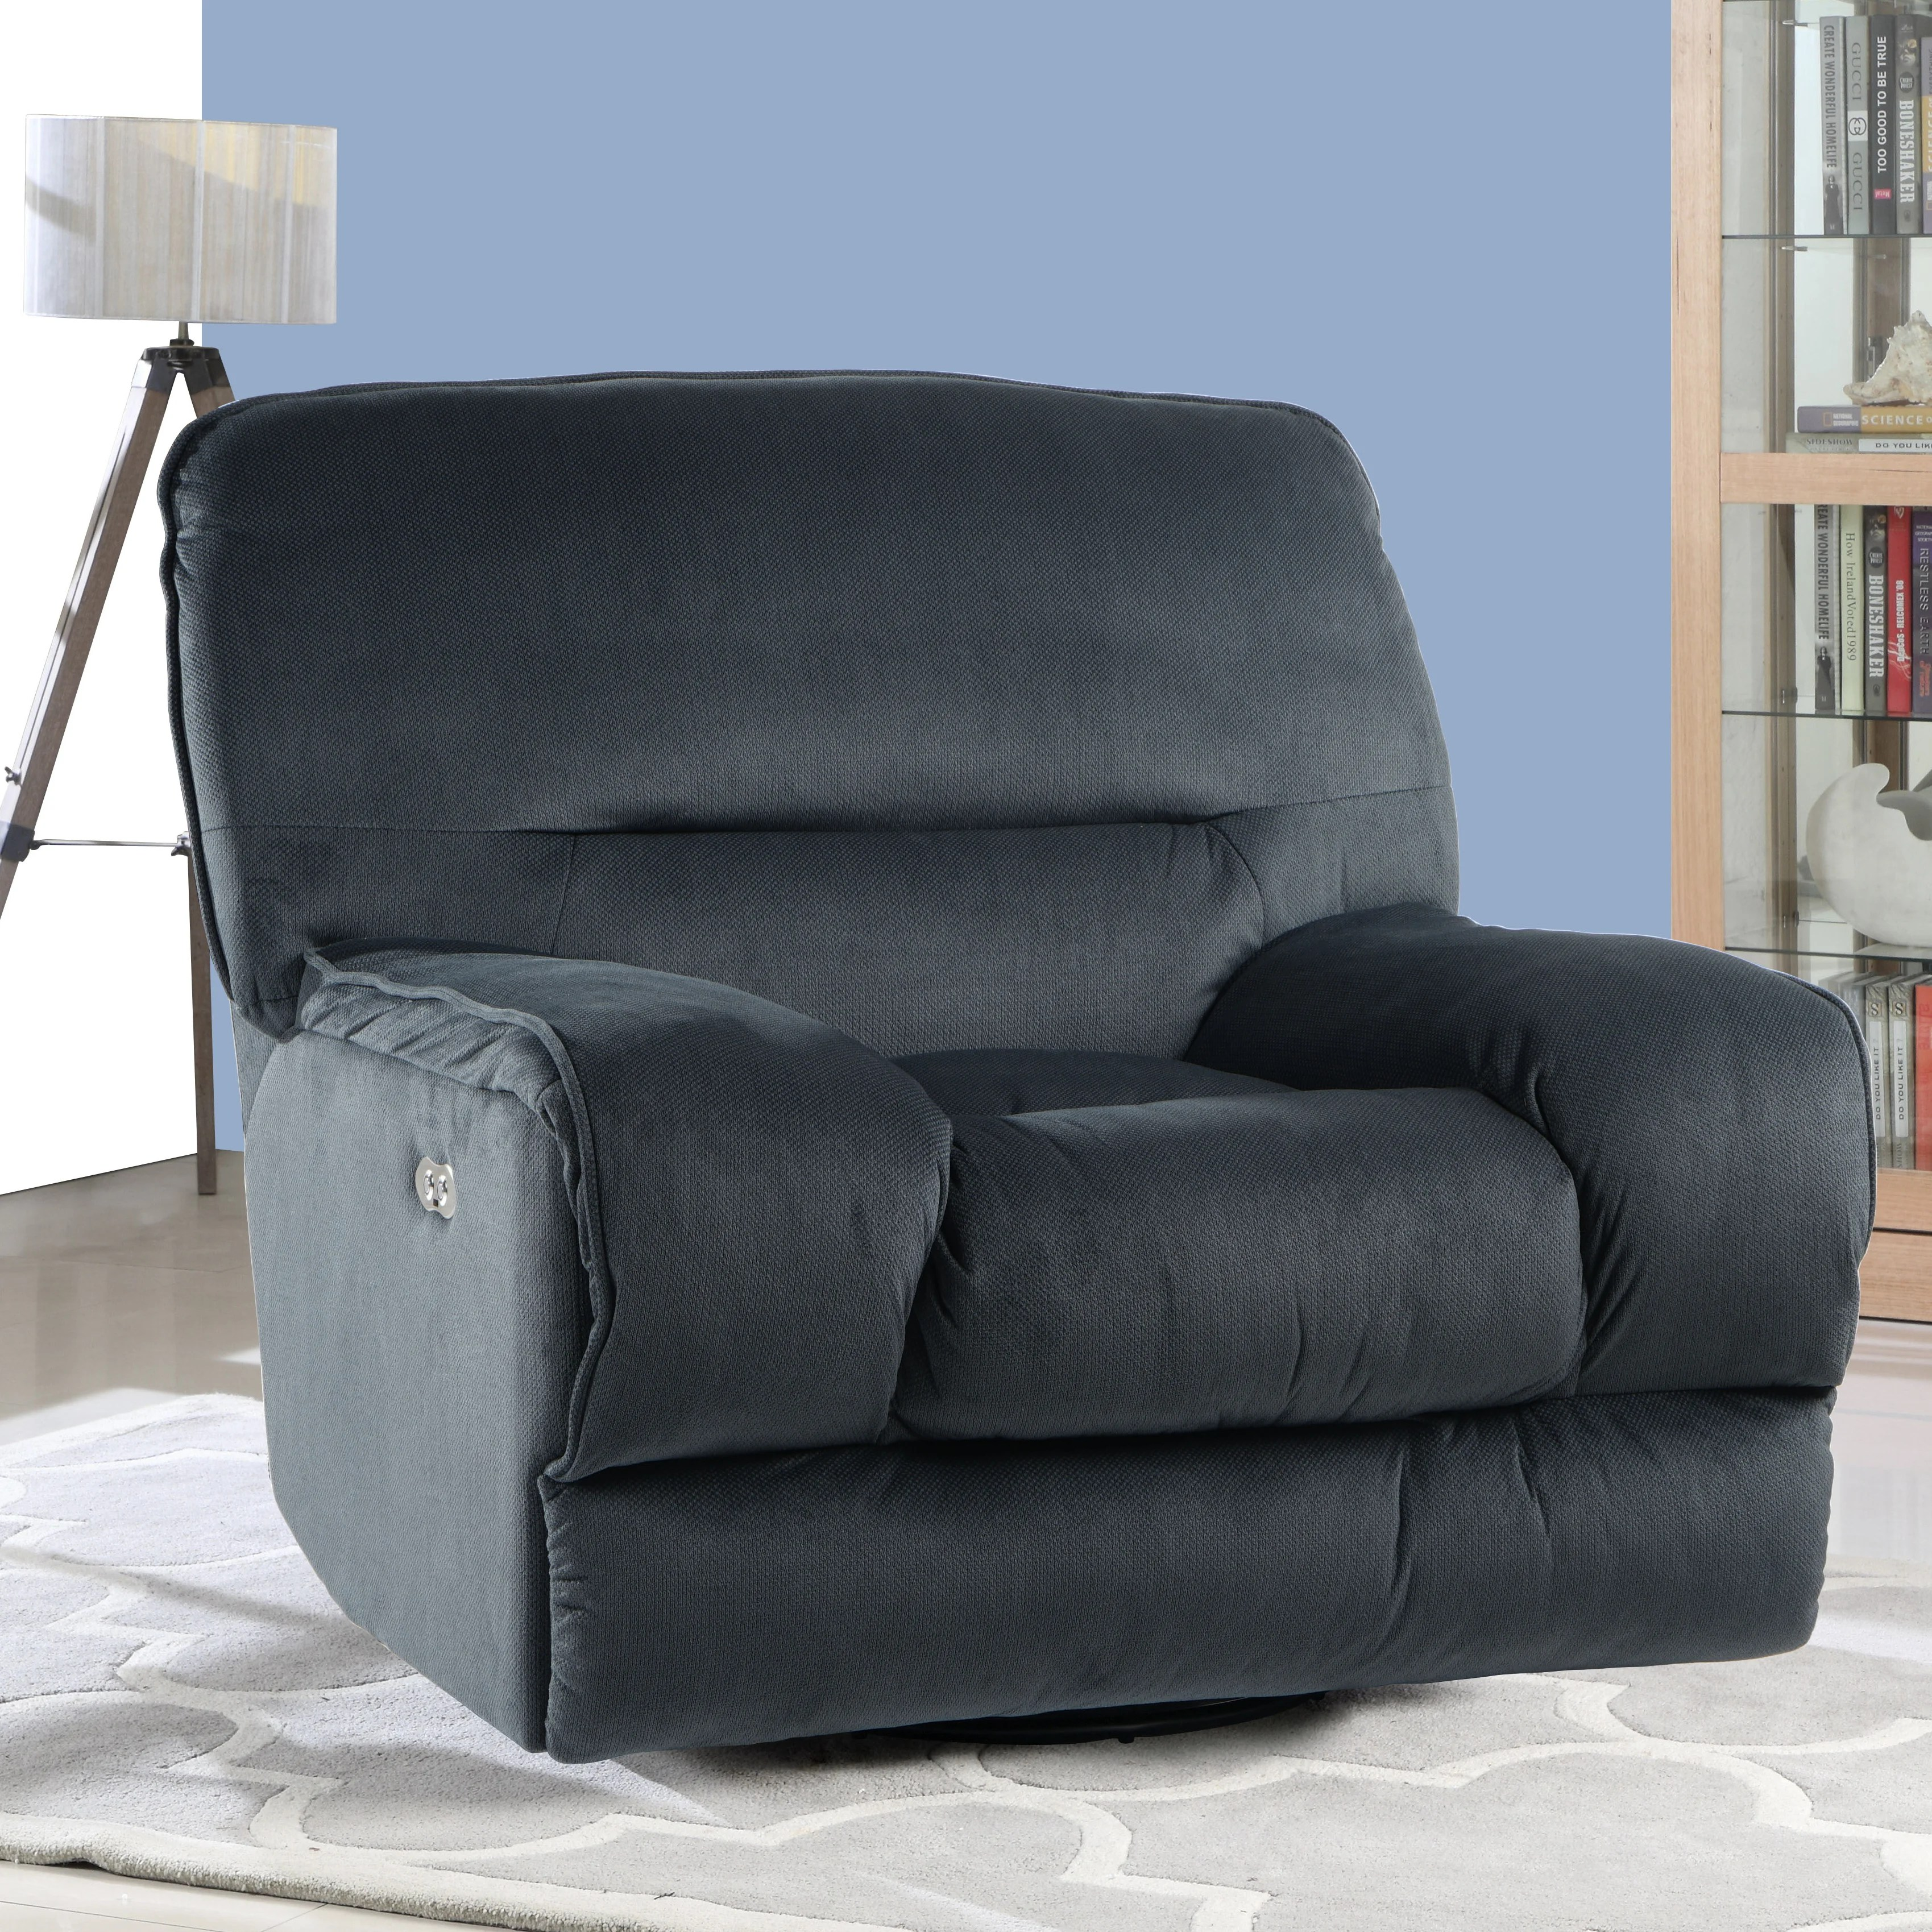 Swivel Rocker Recliner Chair Talton Electric Power Swivel Rocker Recliner